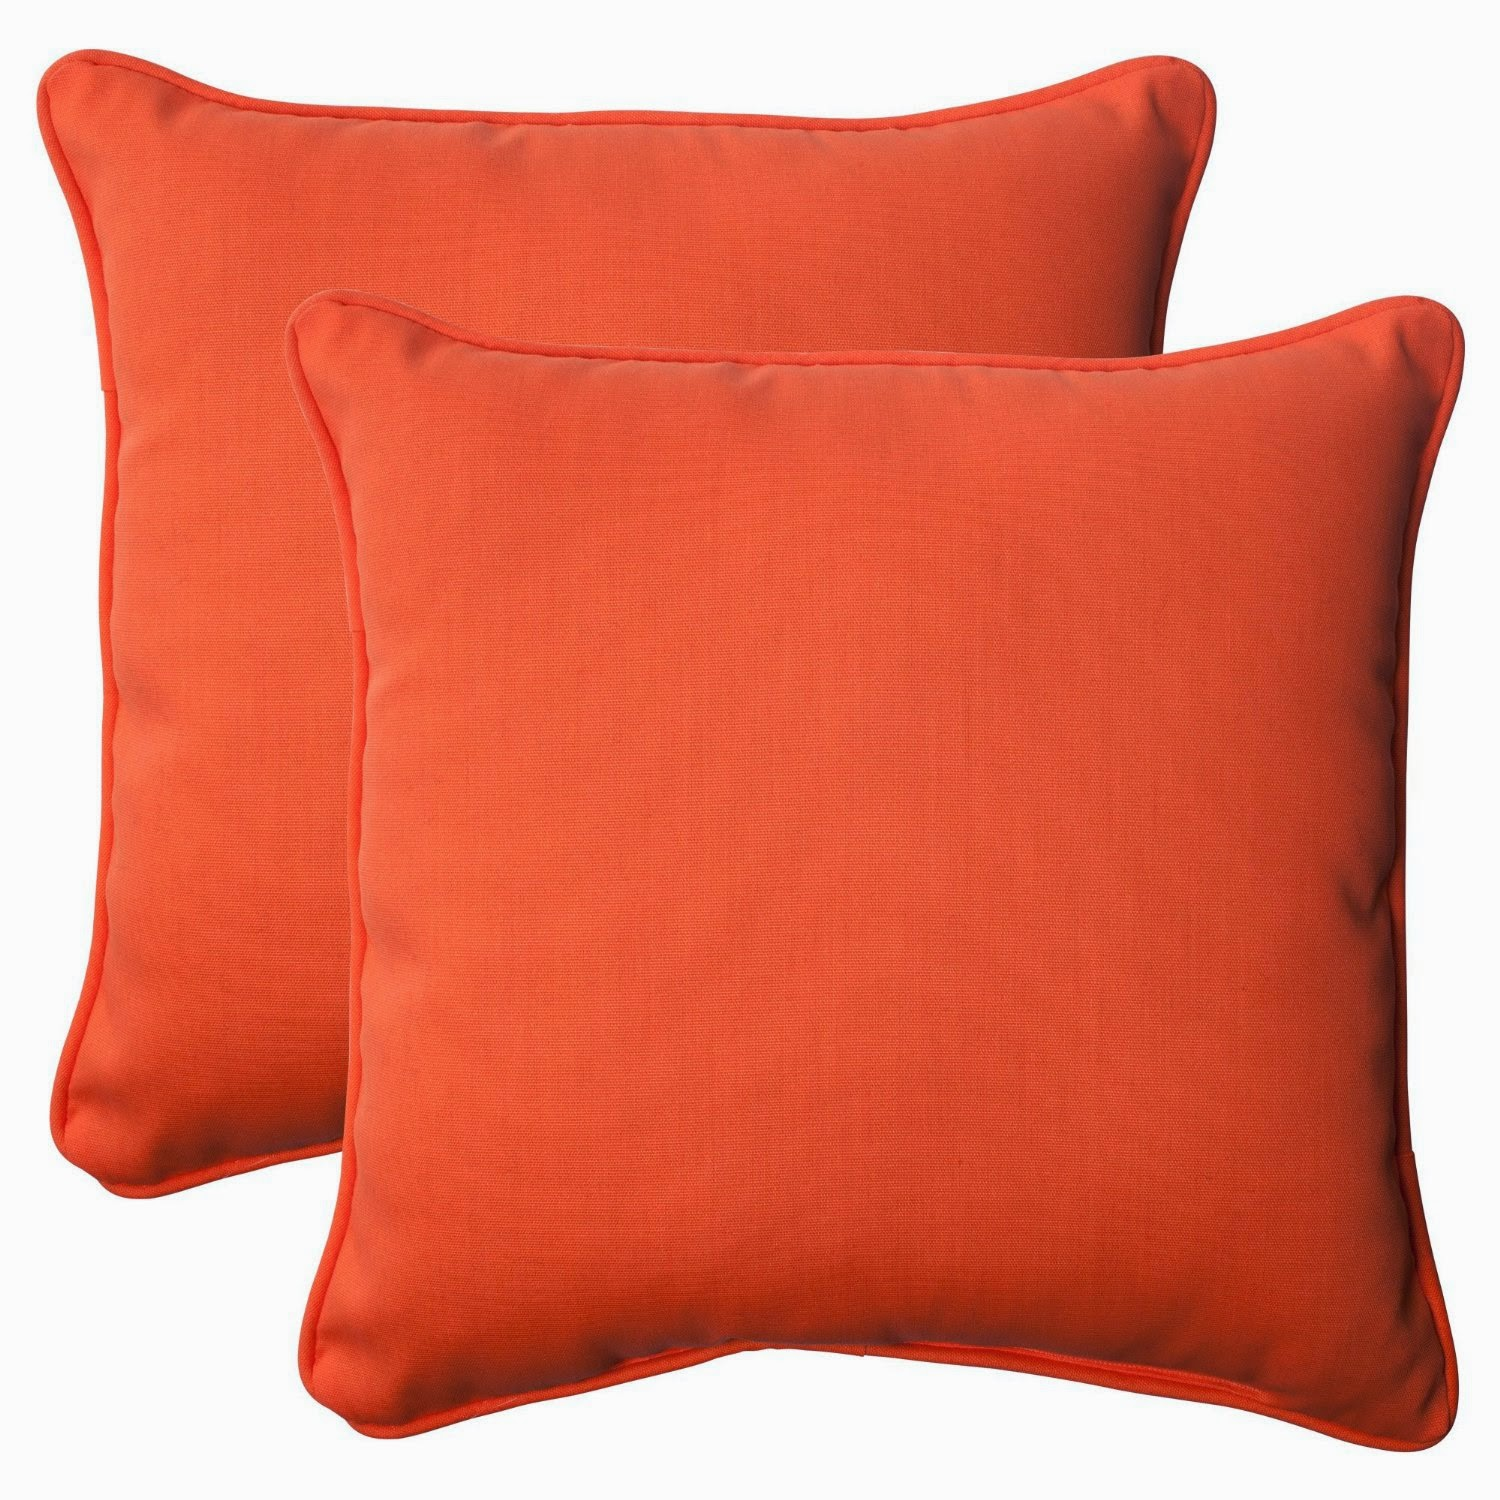 Throw Pillows With Orange : orange couch: April 2014